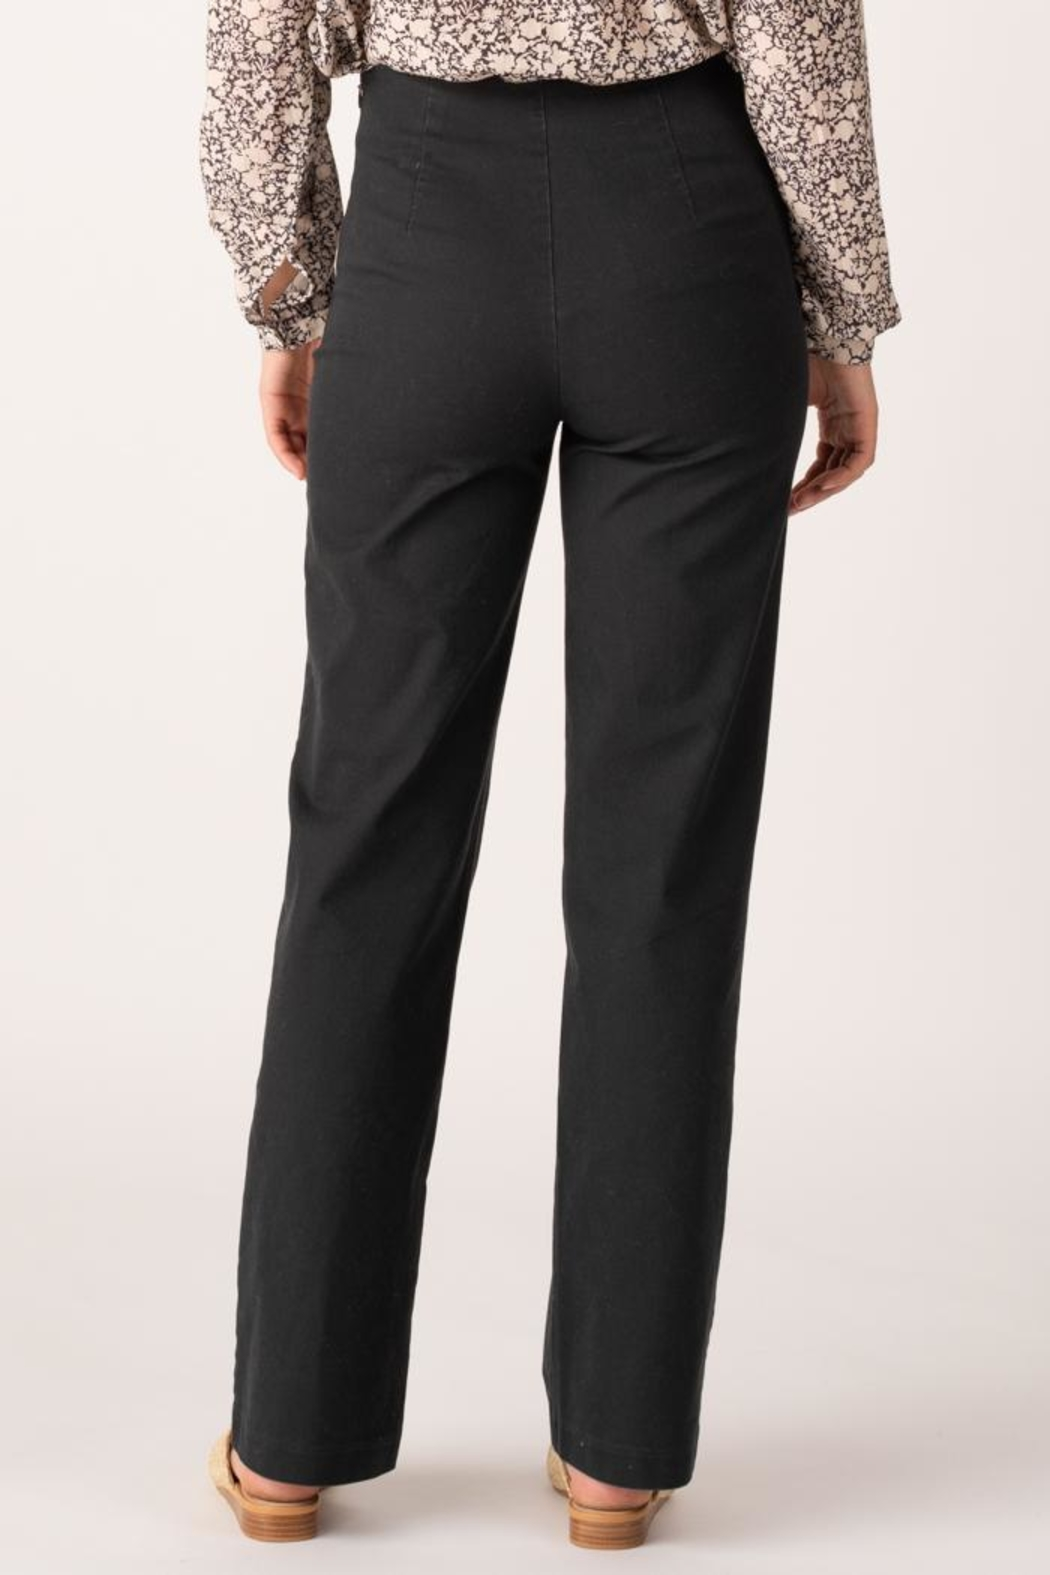 Margaret O'Leary Lace Up Pant - Side Cropped Image